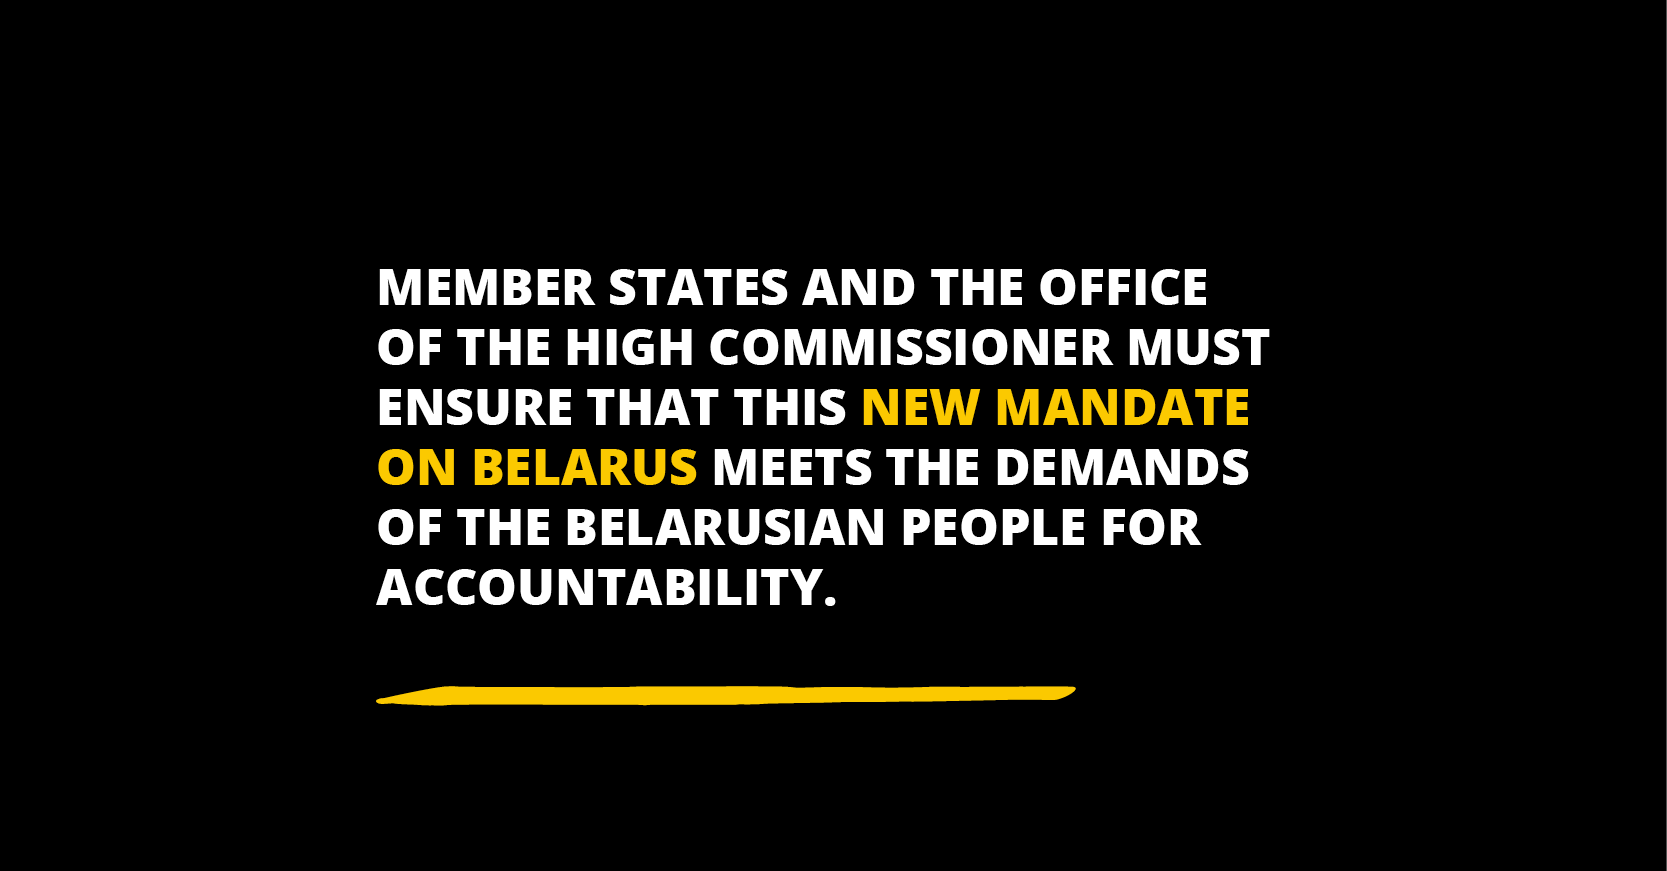 HRC new mandate on Belarus